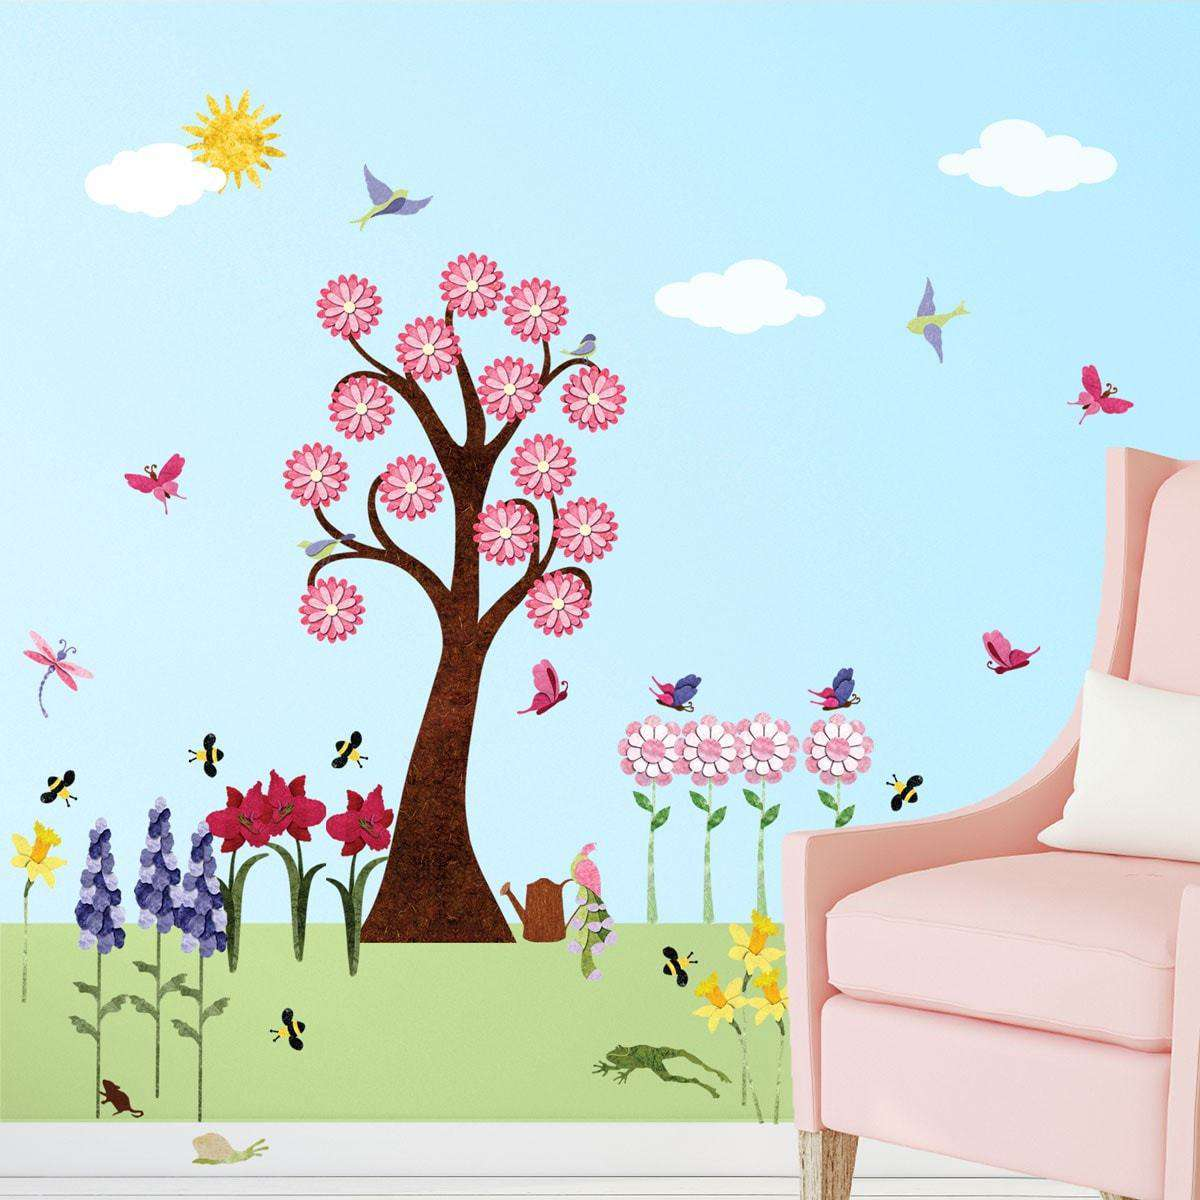 Flower Wall Decals for Girls Room – Peel & Stick Flower Stickers - MINI SET